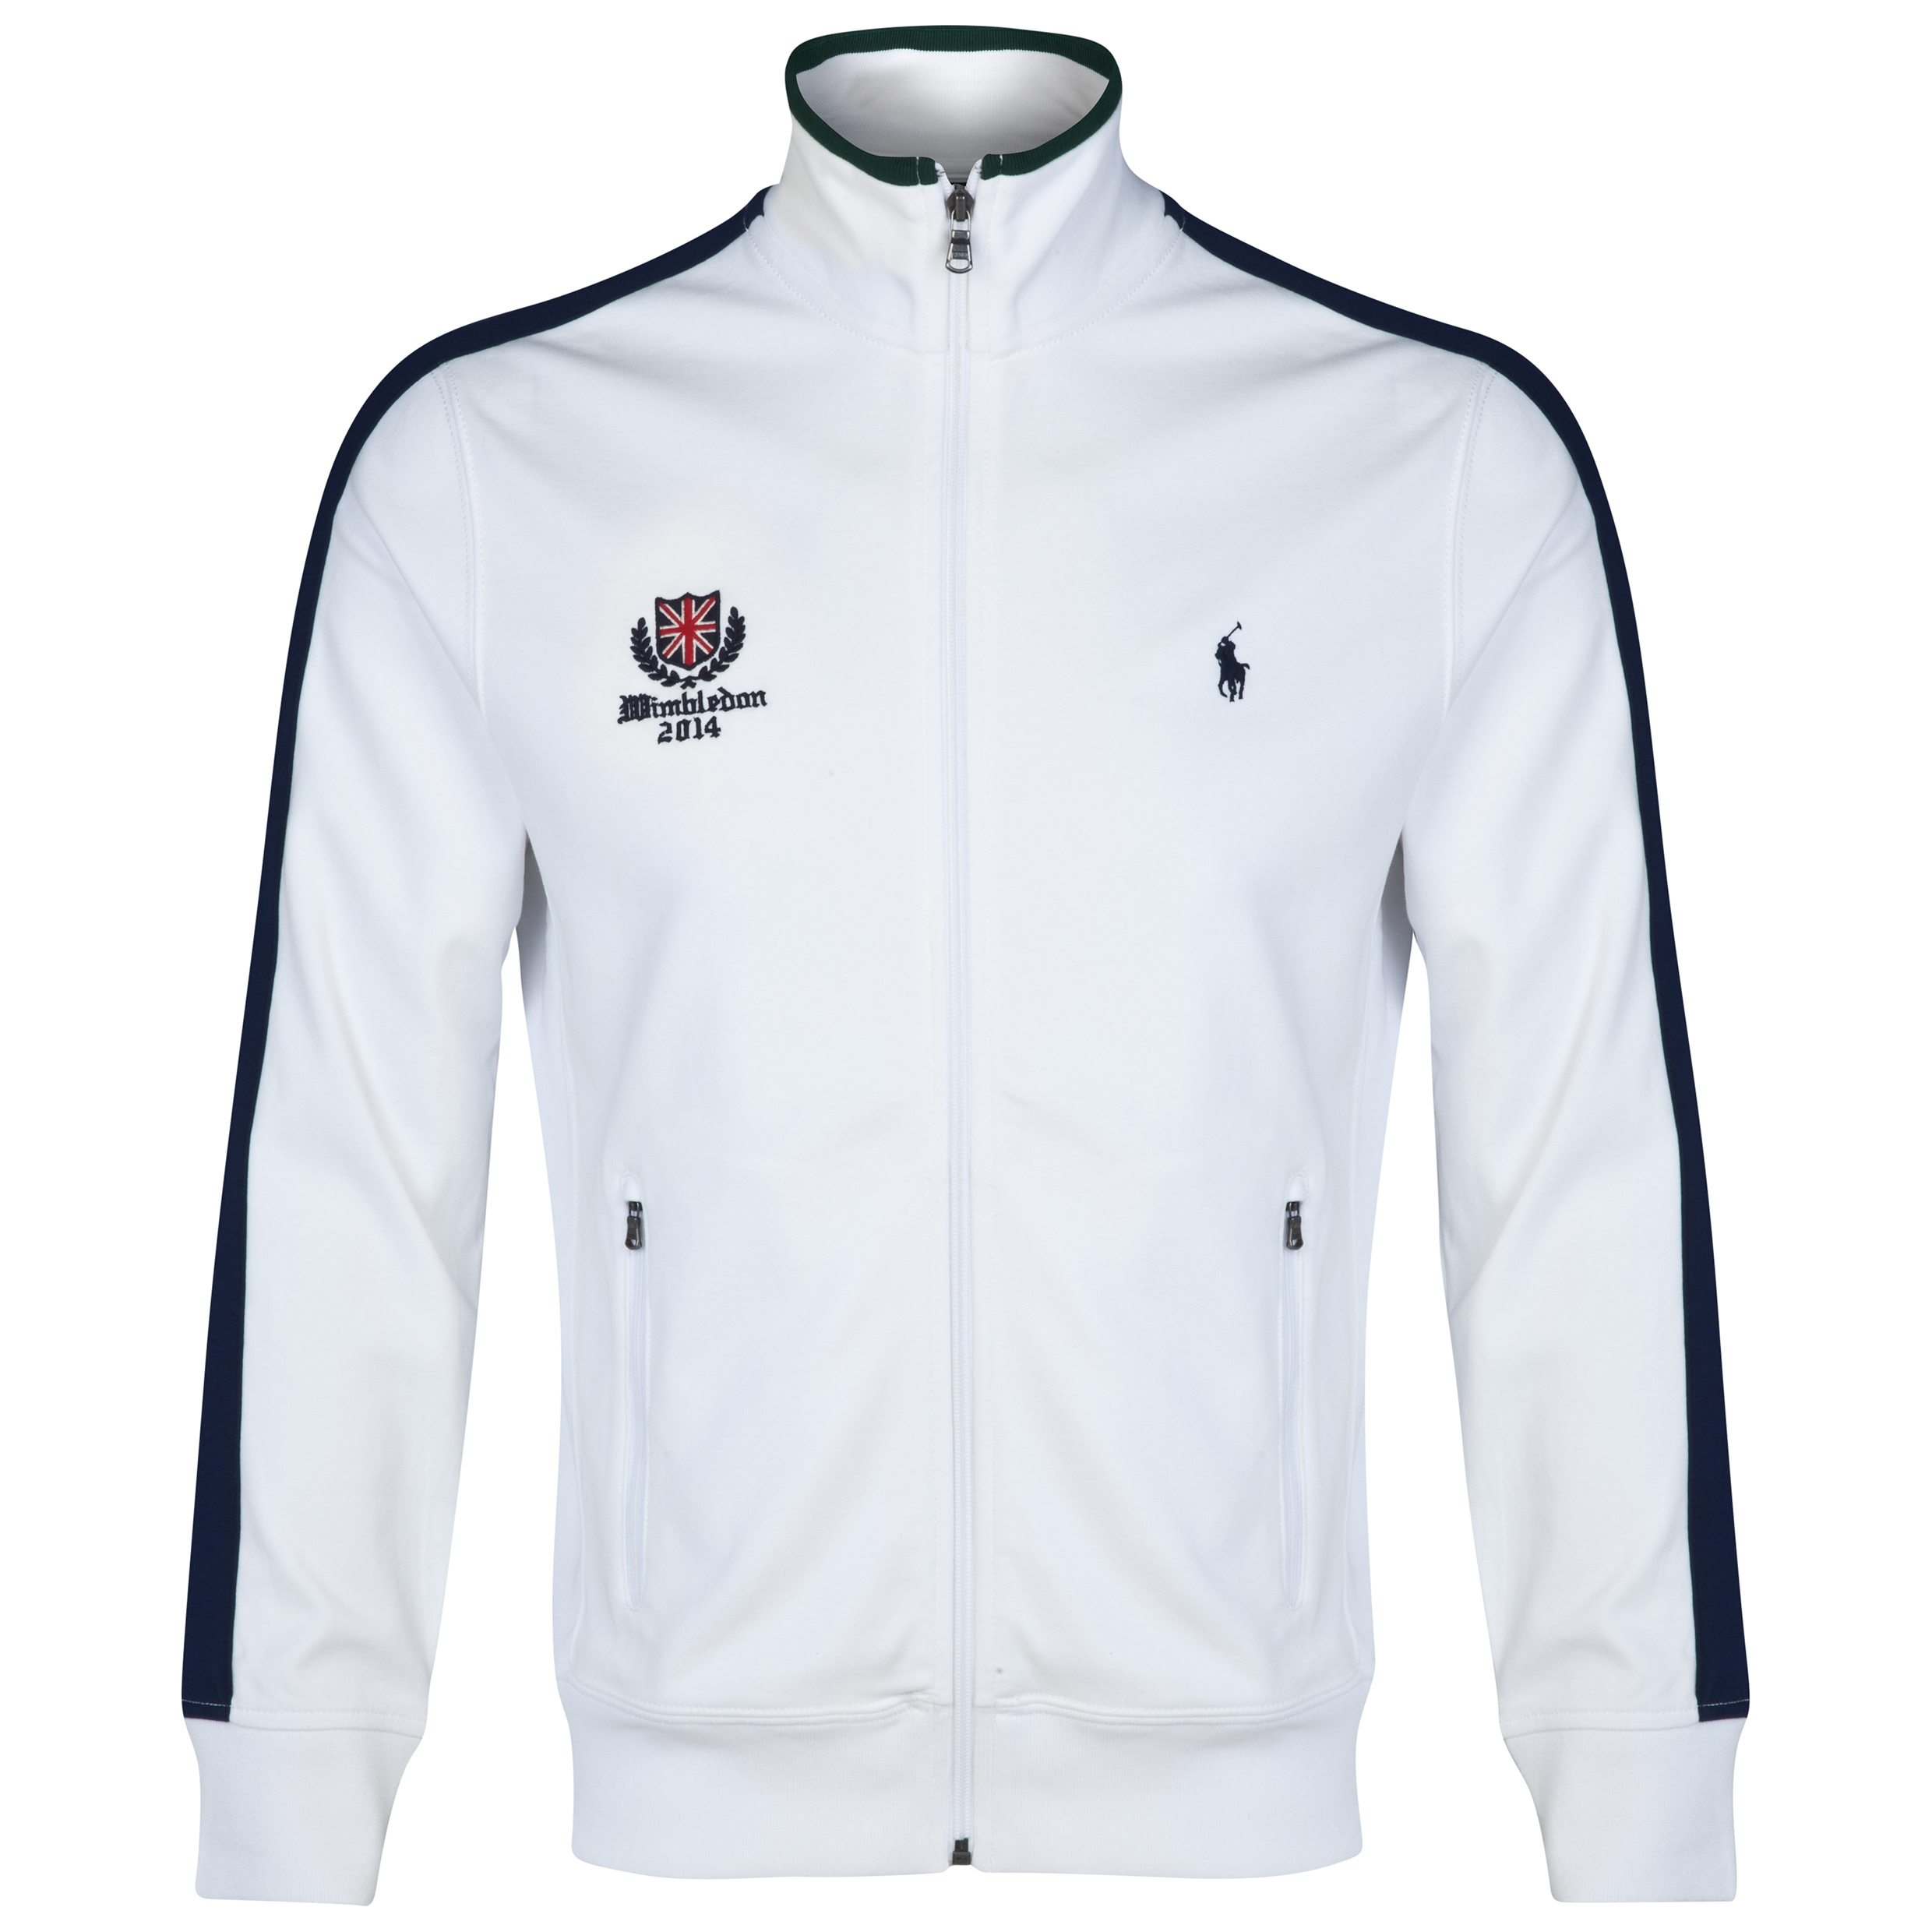 Wimbledon Polo Ralph Lauren Track Jacket - Classic Oxford White